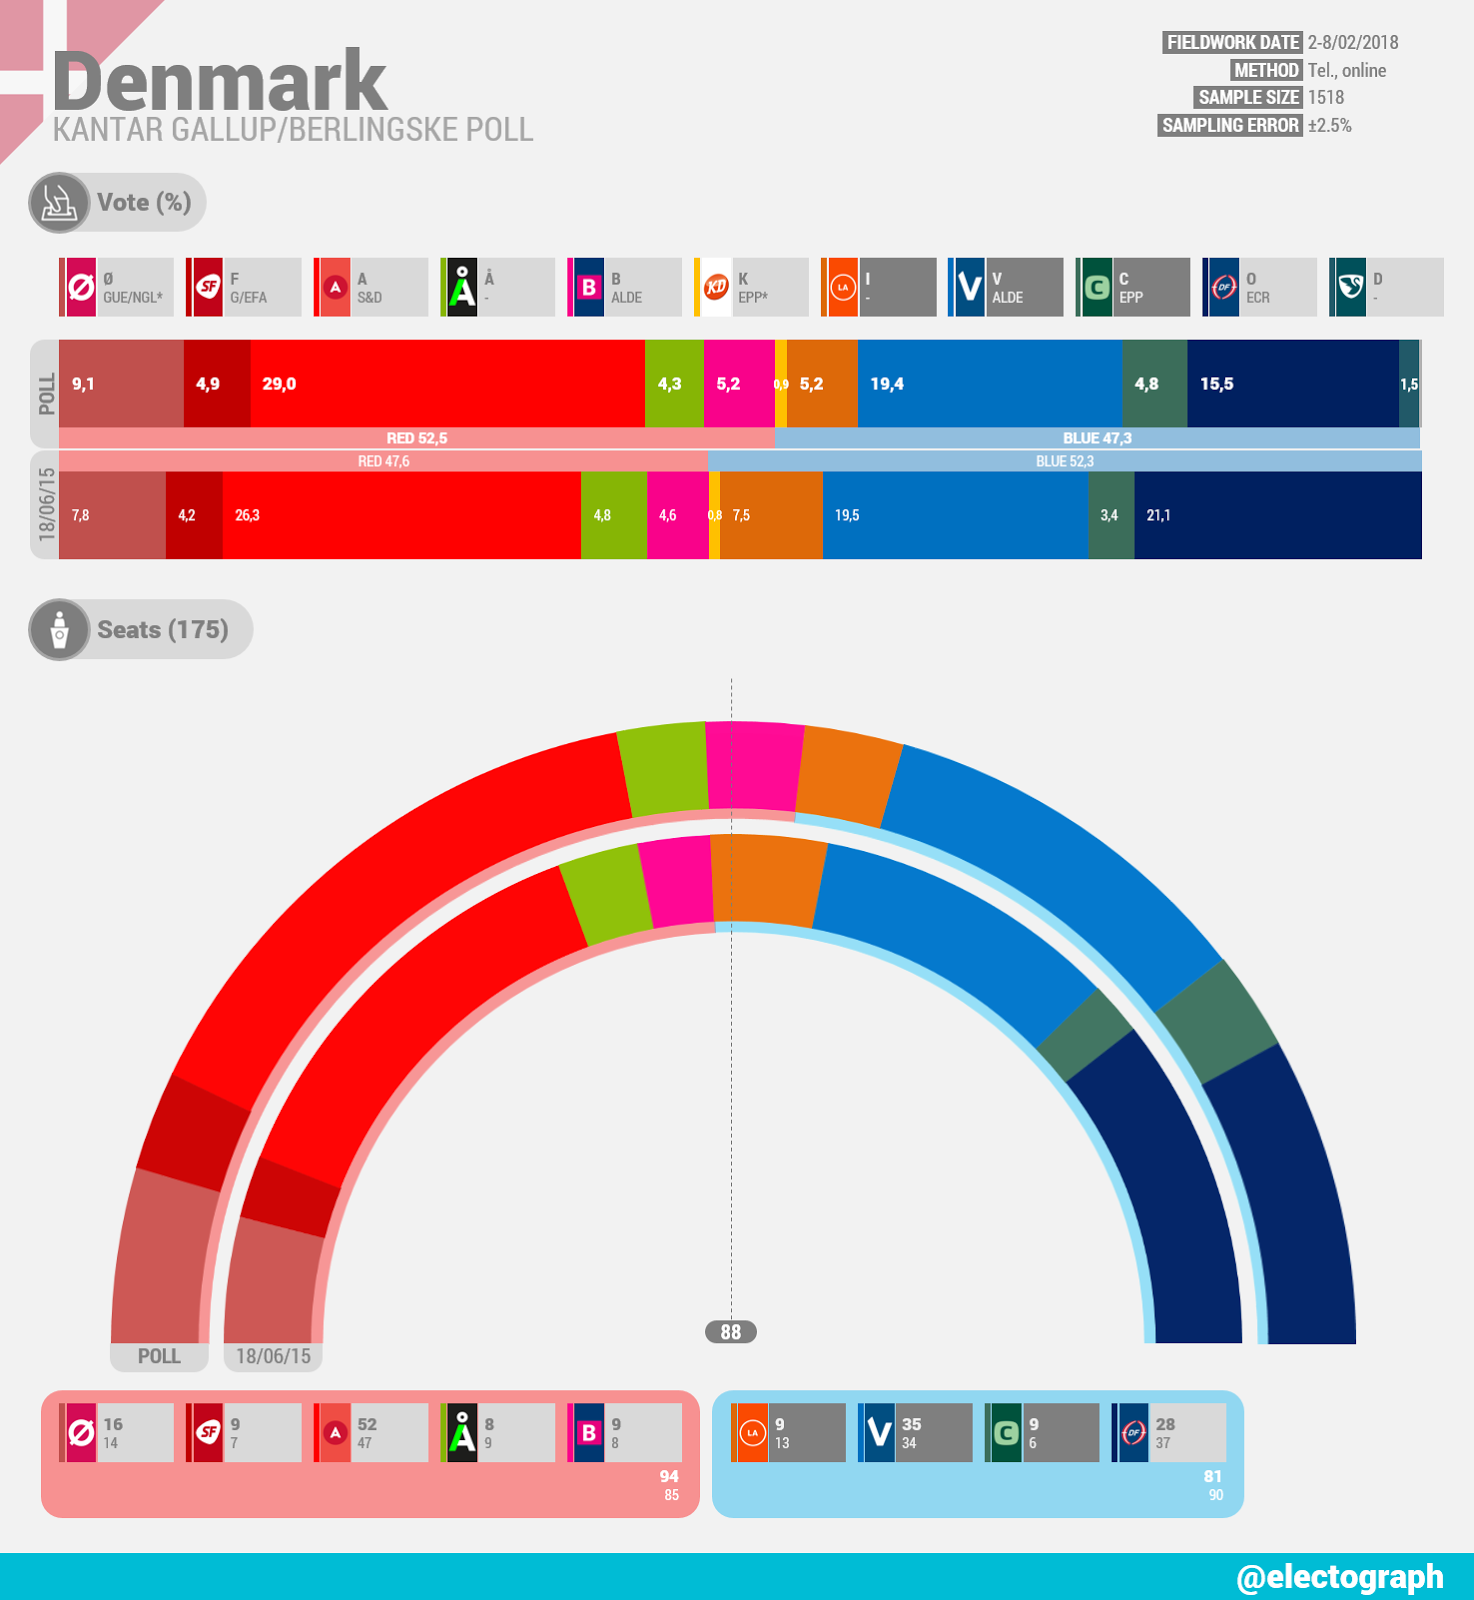 DENMARK Kantar Gallup poll chart for Berlingske, February 2018